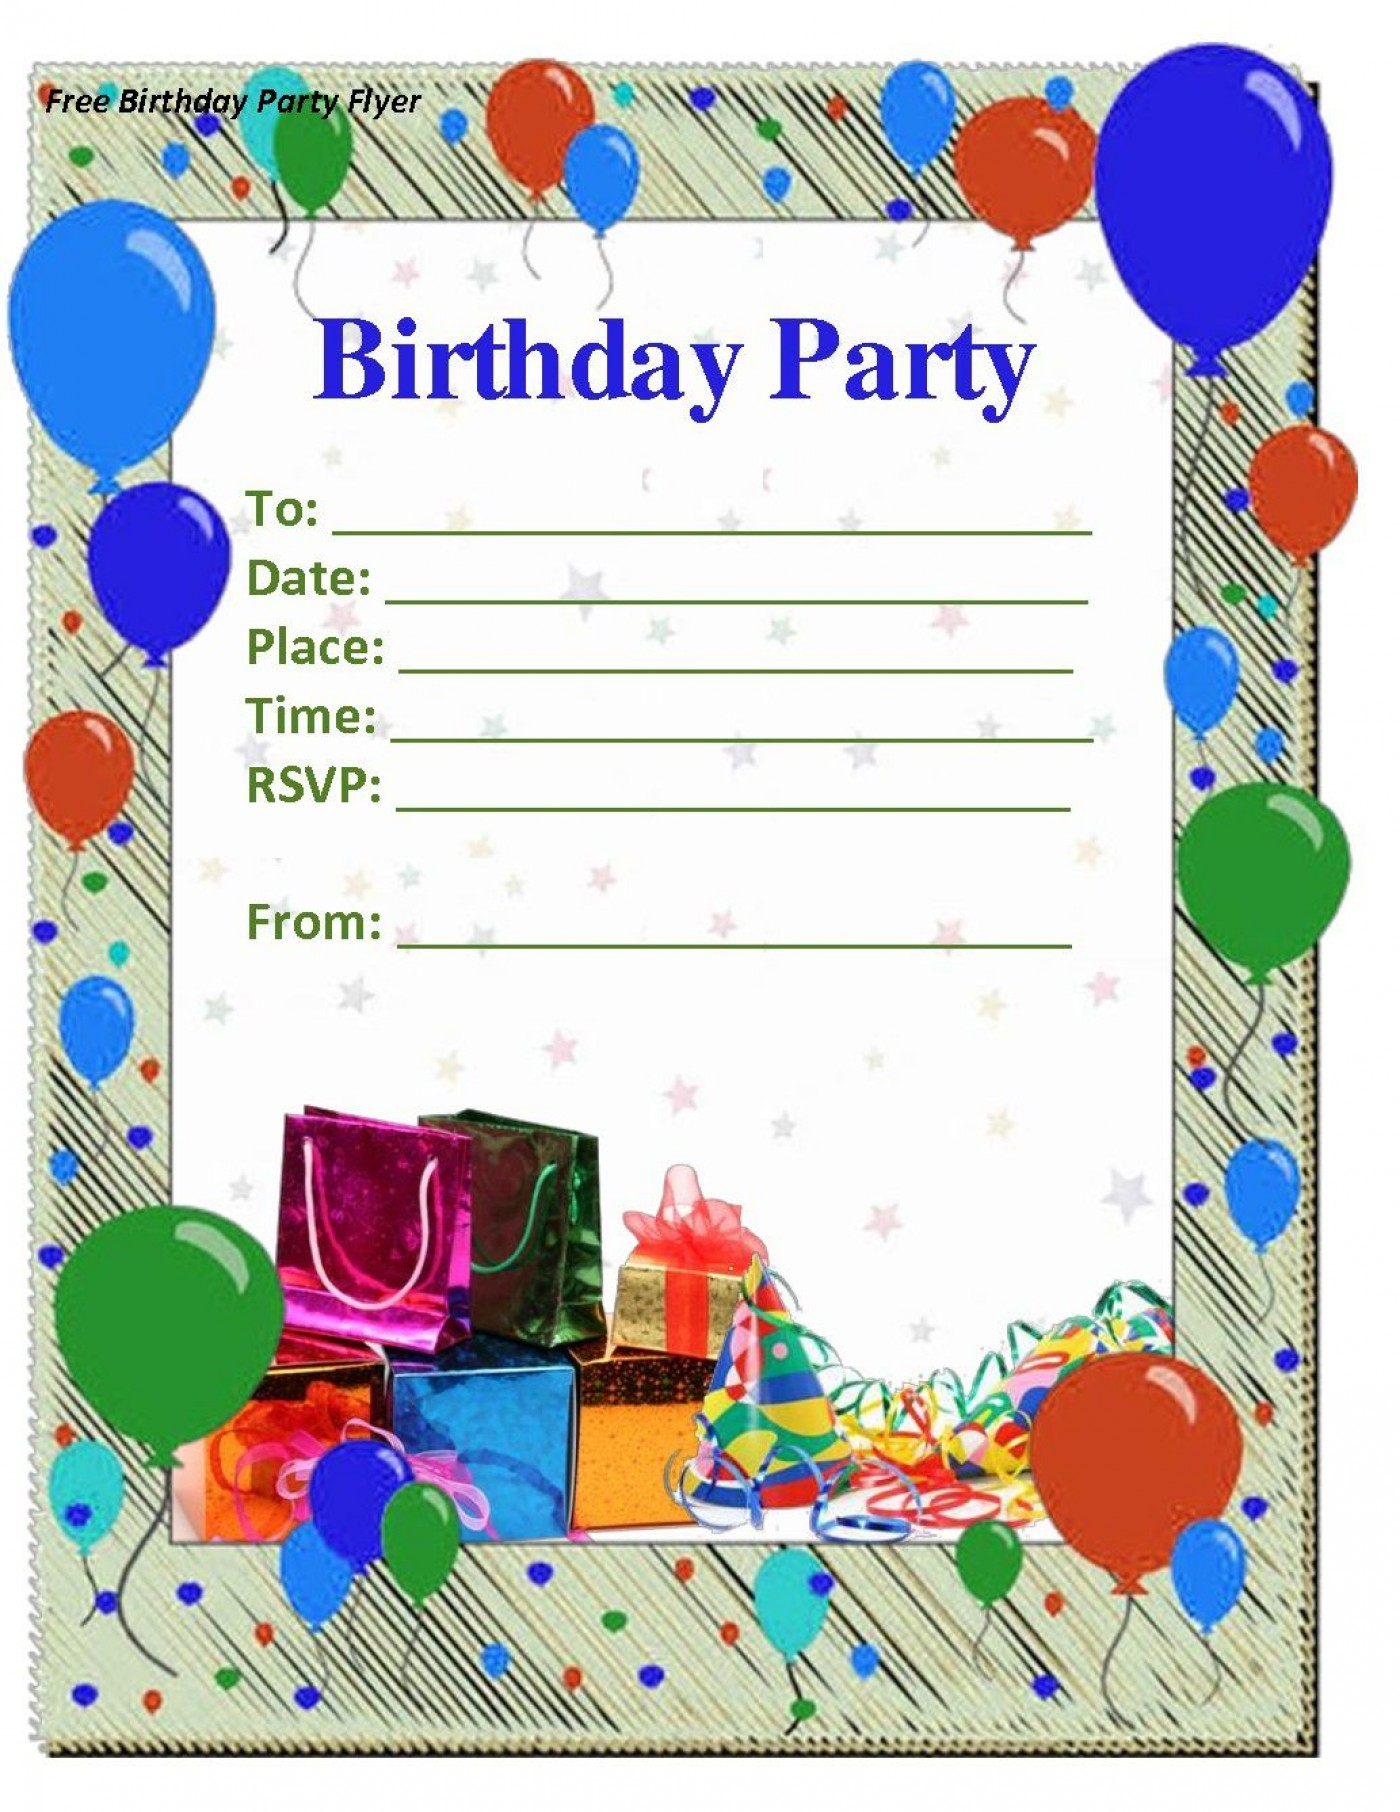 009 Staggering Free Birthday Party Invitation Template For Word Idea 1400